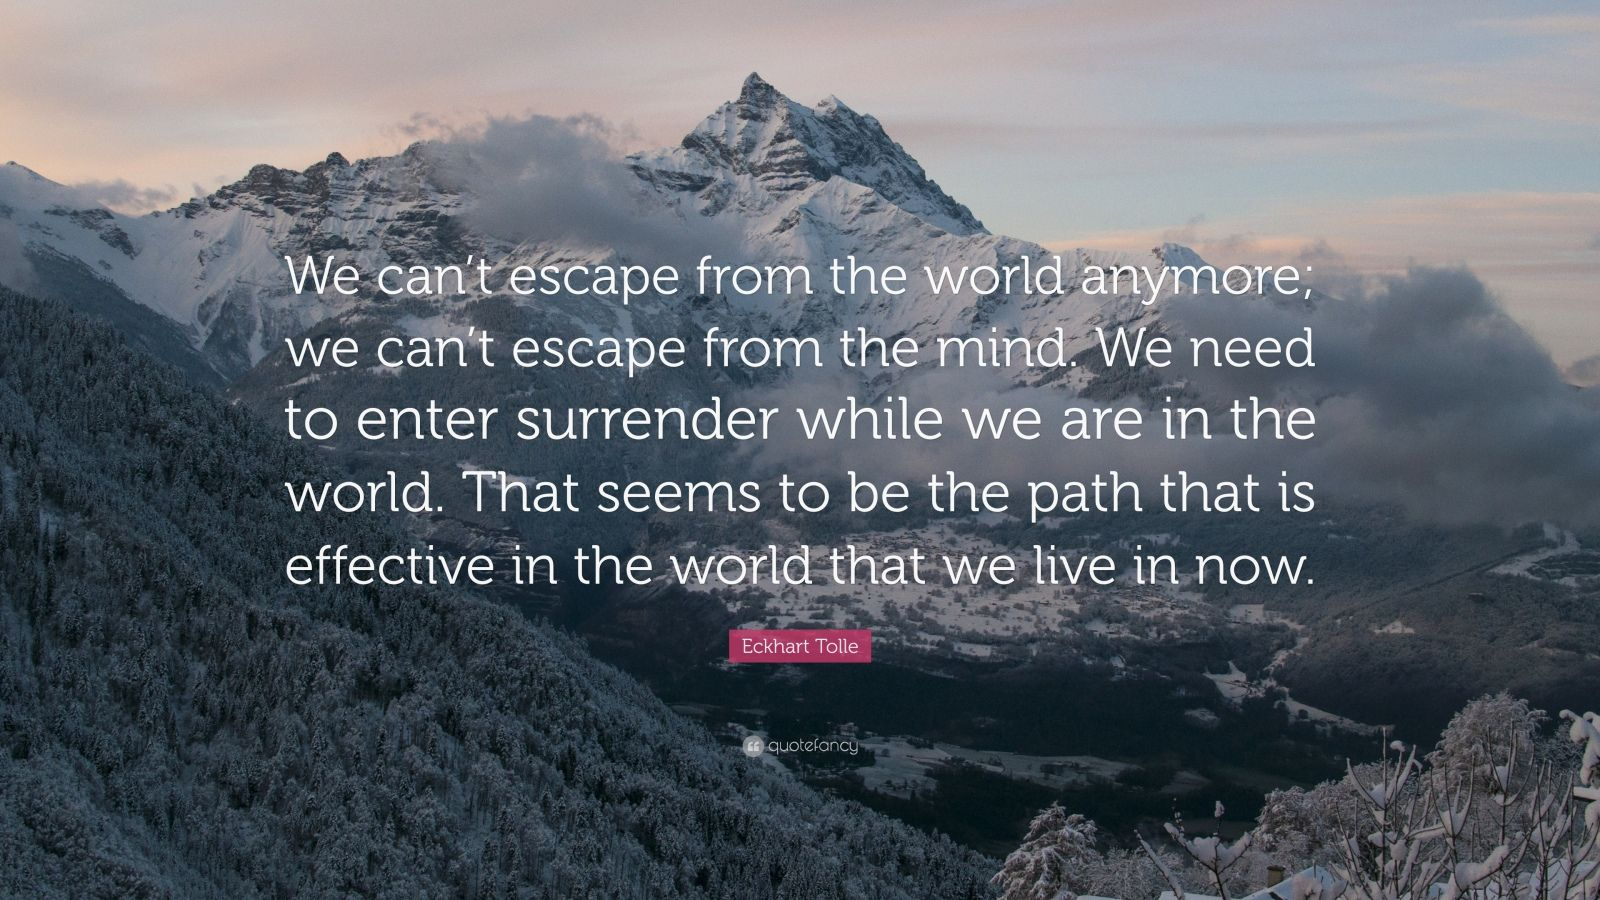 """Eckhart Tolle Quote: """"We can't escape from the world anymore; we can't escape from the mind. We need to enter surrender while we are in the world. That seems to be the path that is effective in the world that we live in now."""""""